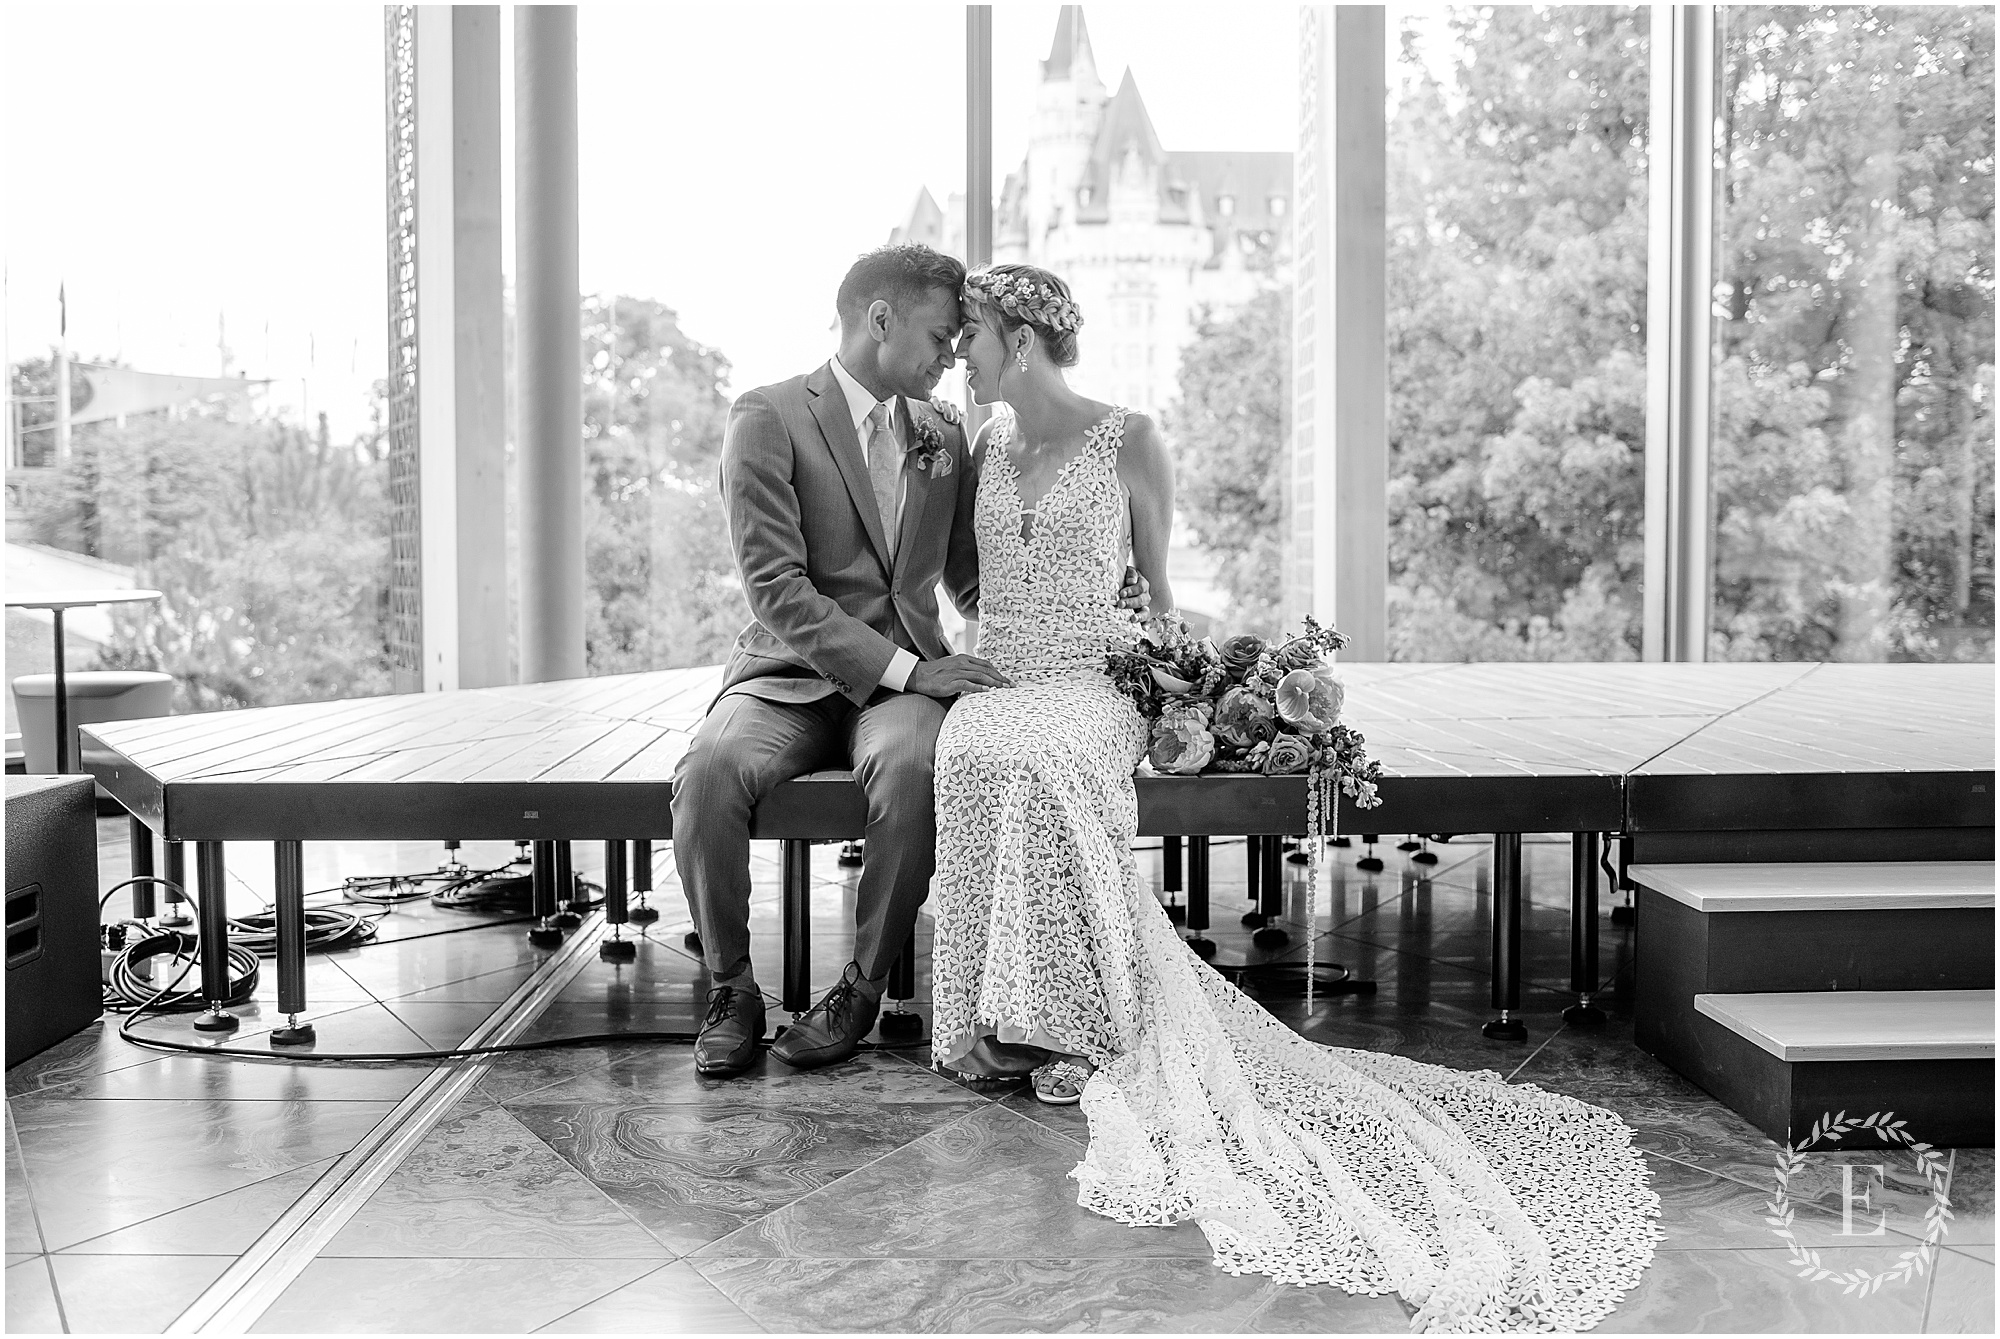 666 Cait and Saaqib Jabberwocky Ottawa Wedding 2019 - Photography by Emma.jpg